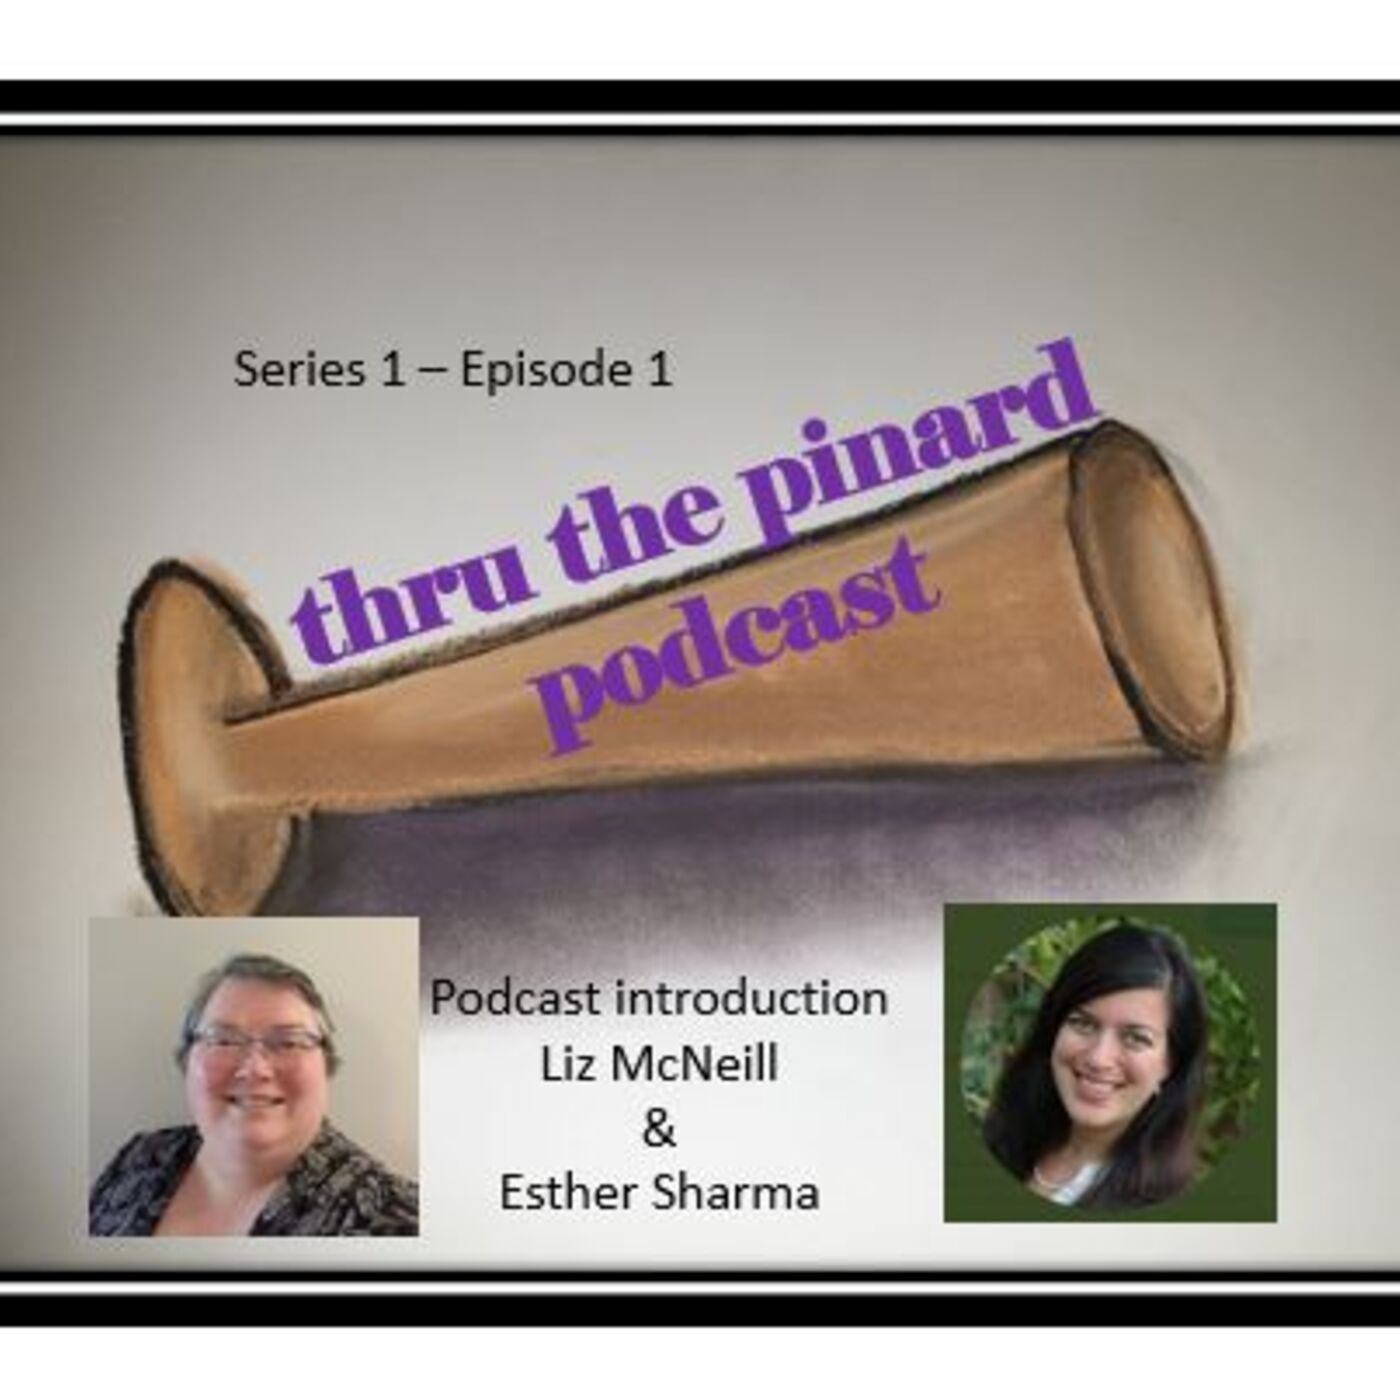 Episode 1 - podcast intro with Liz McNeill and Esther Sharma